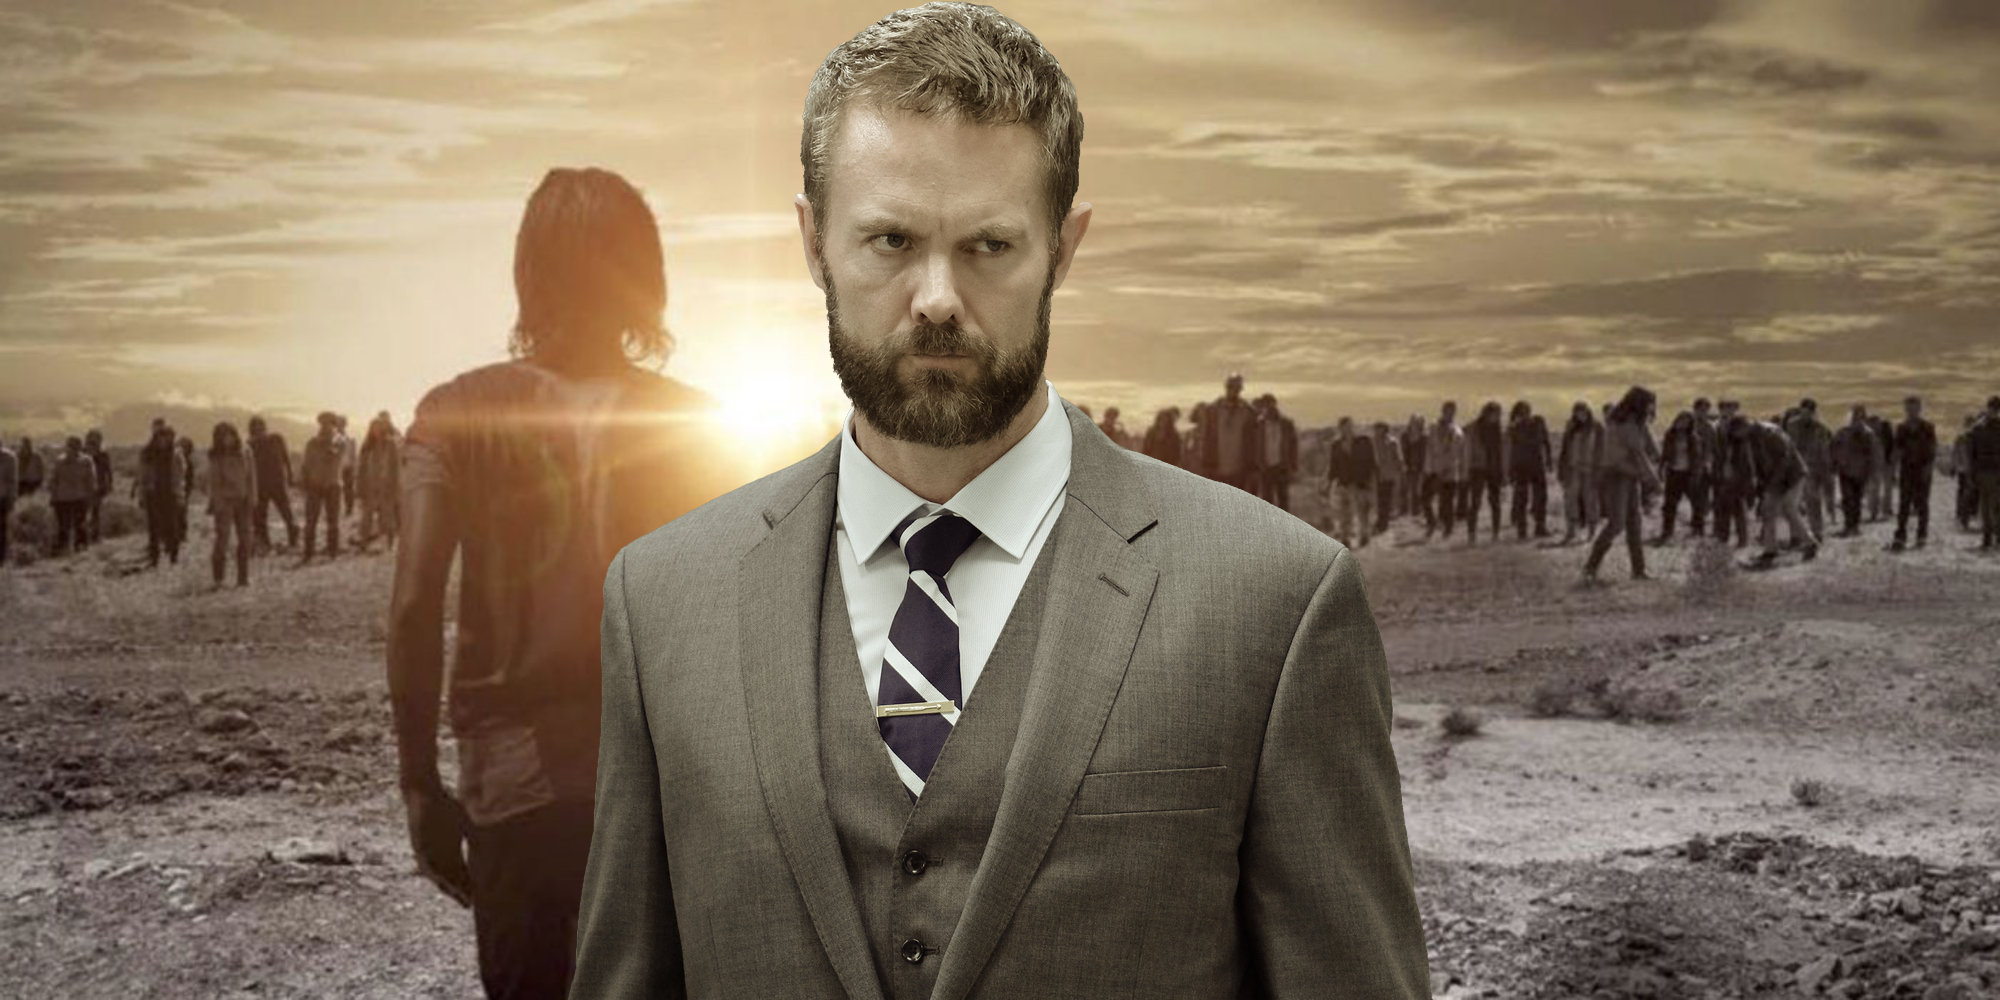 Garret Dillahunt Fear the Walking Dead Season 4